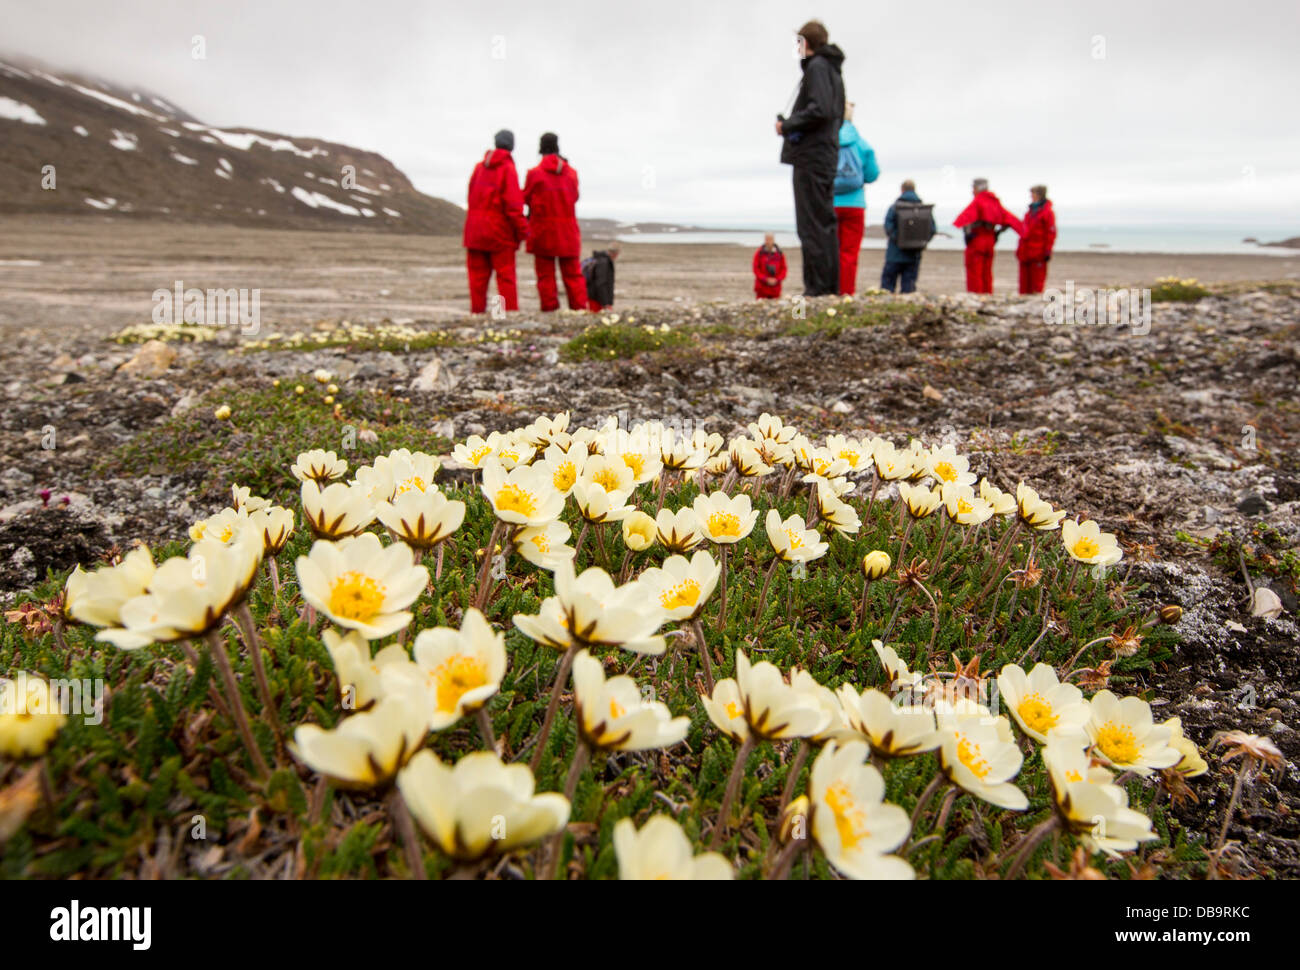 Arctic wildlflowers in front of a glacier in northern Svalbard. - Stock Image